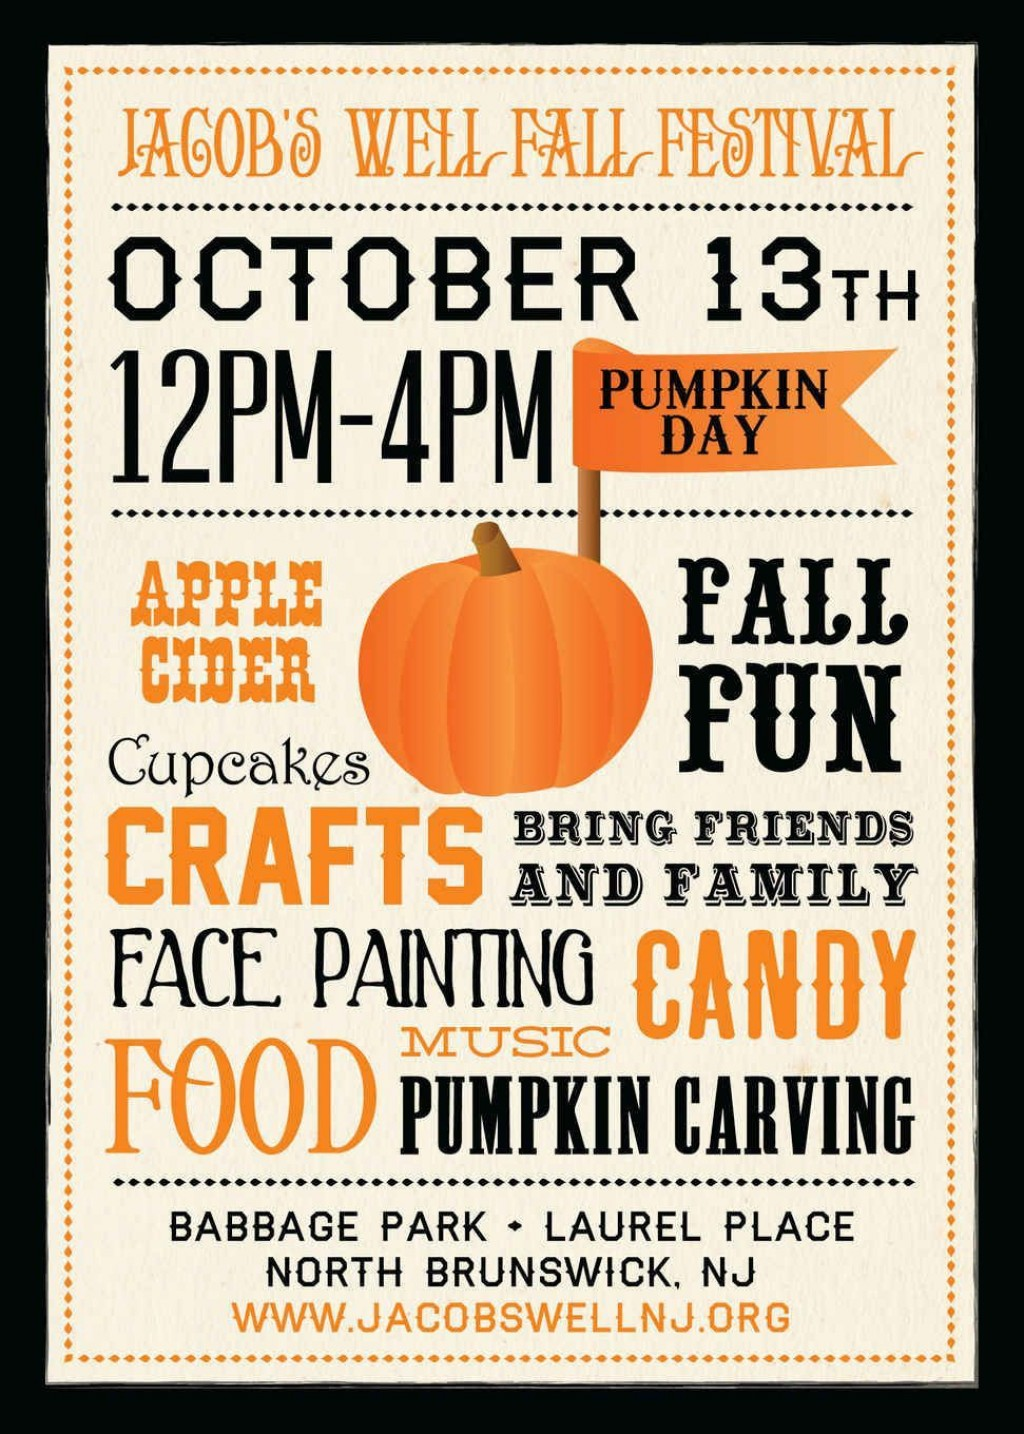 002 Simple Fall Festival Flyer Template Inspiration  FreeLarge